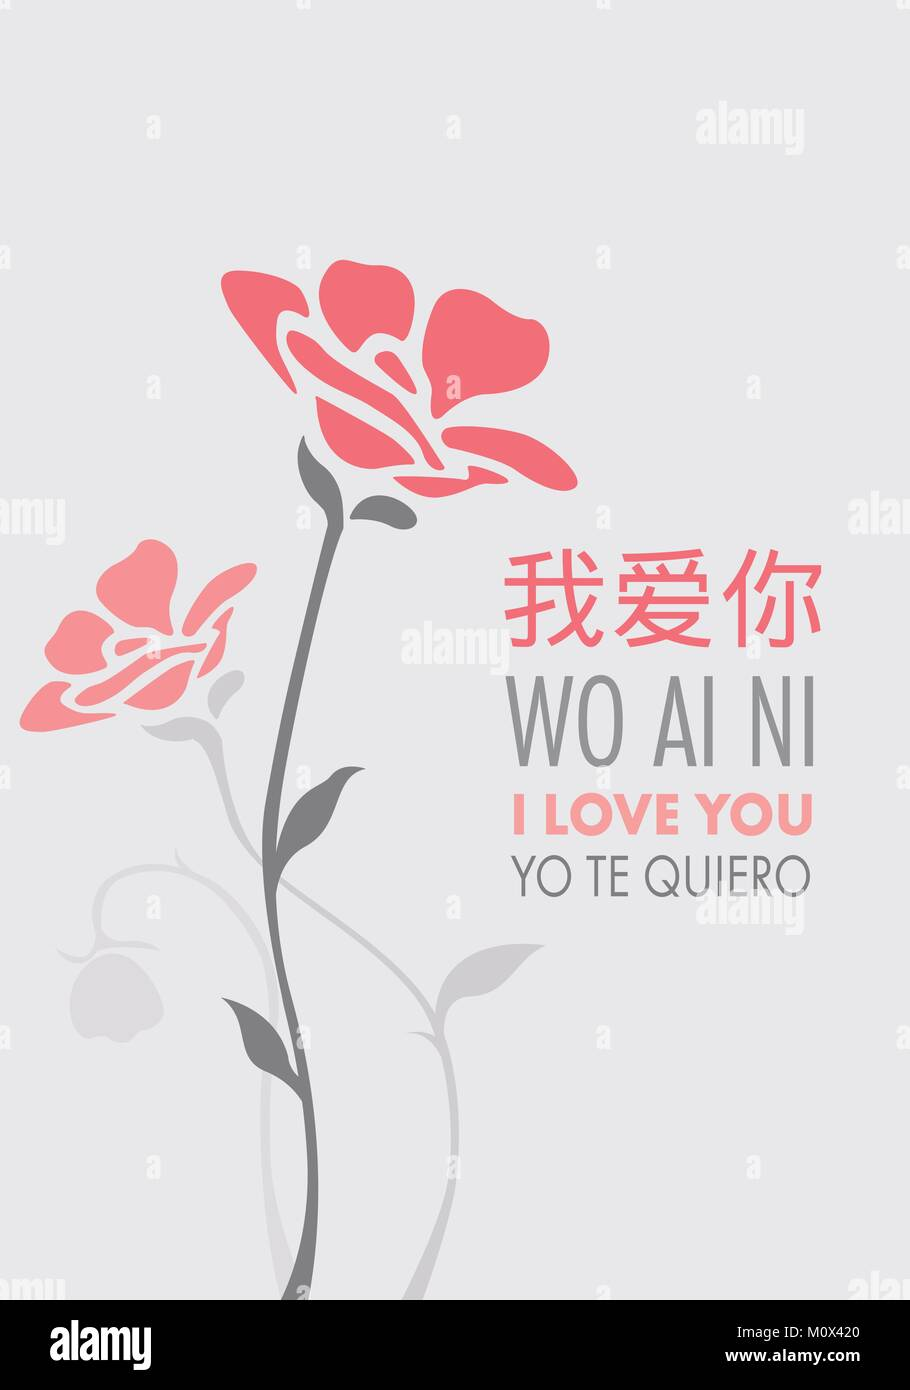 Phrase I Love You In English Spanish And Chinese Mandarin Decorated Stock Vector Image Art Alamy